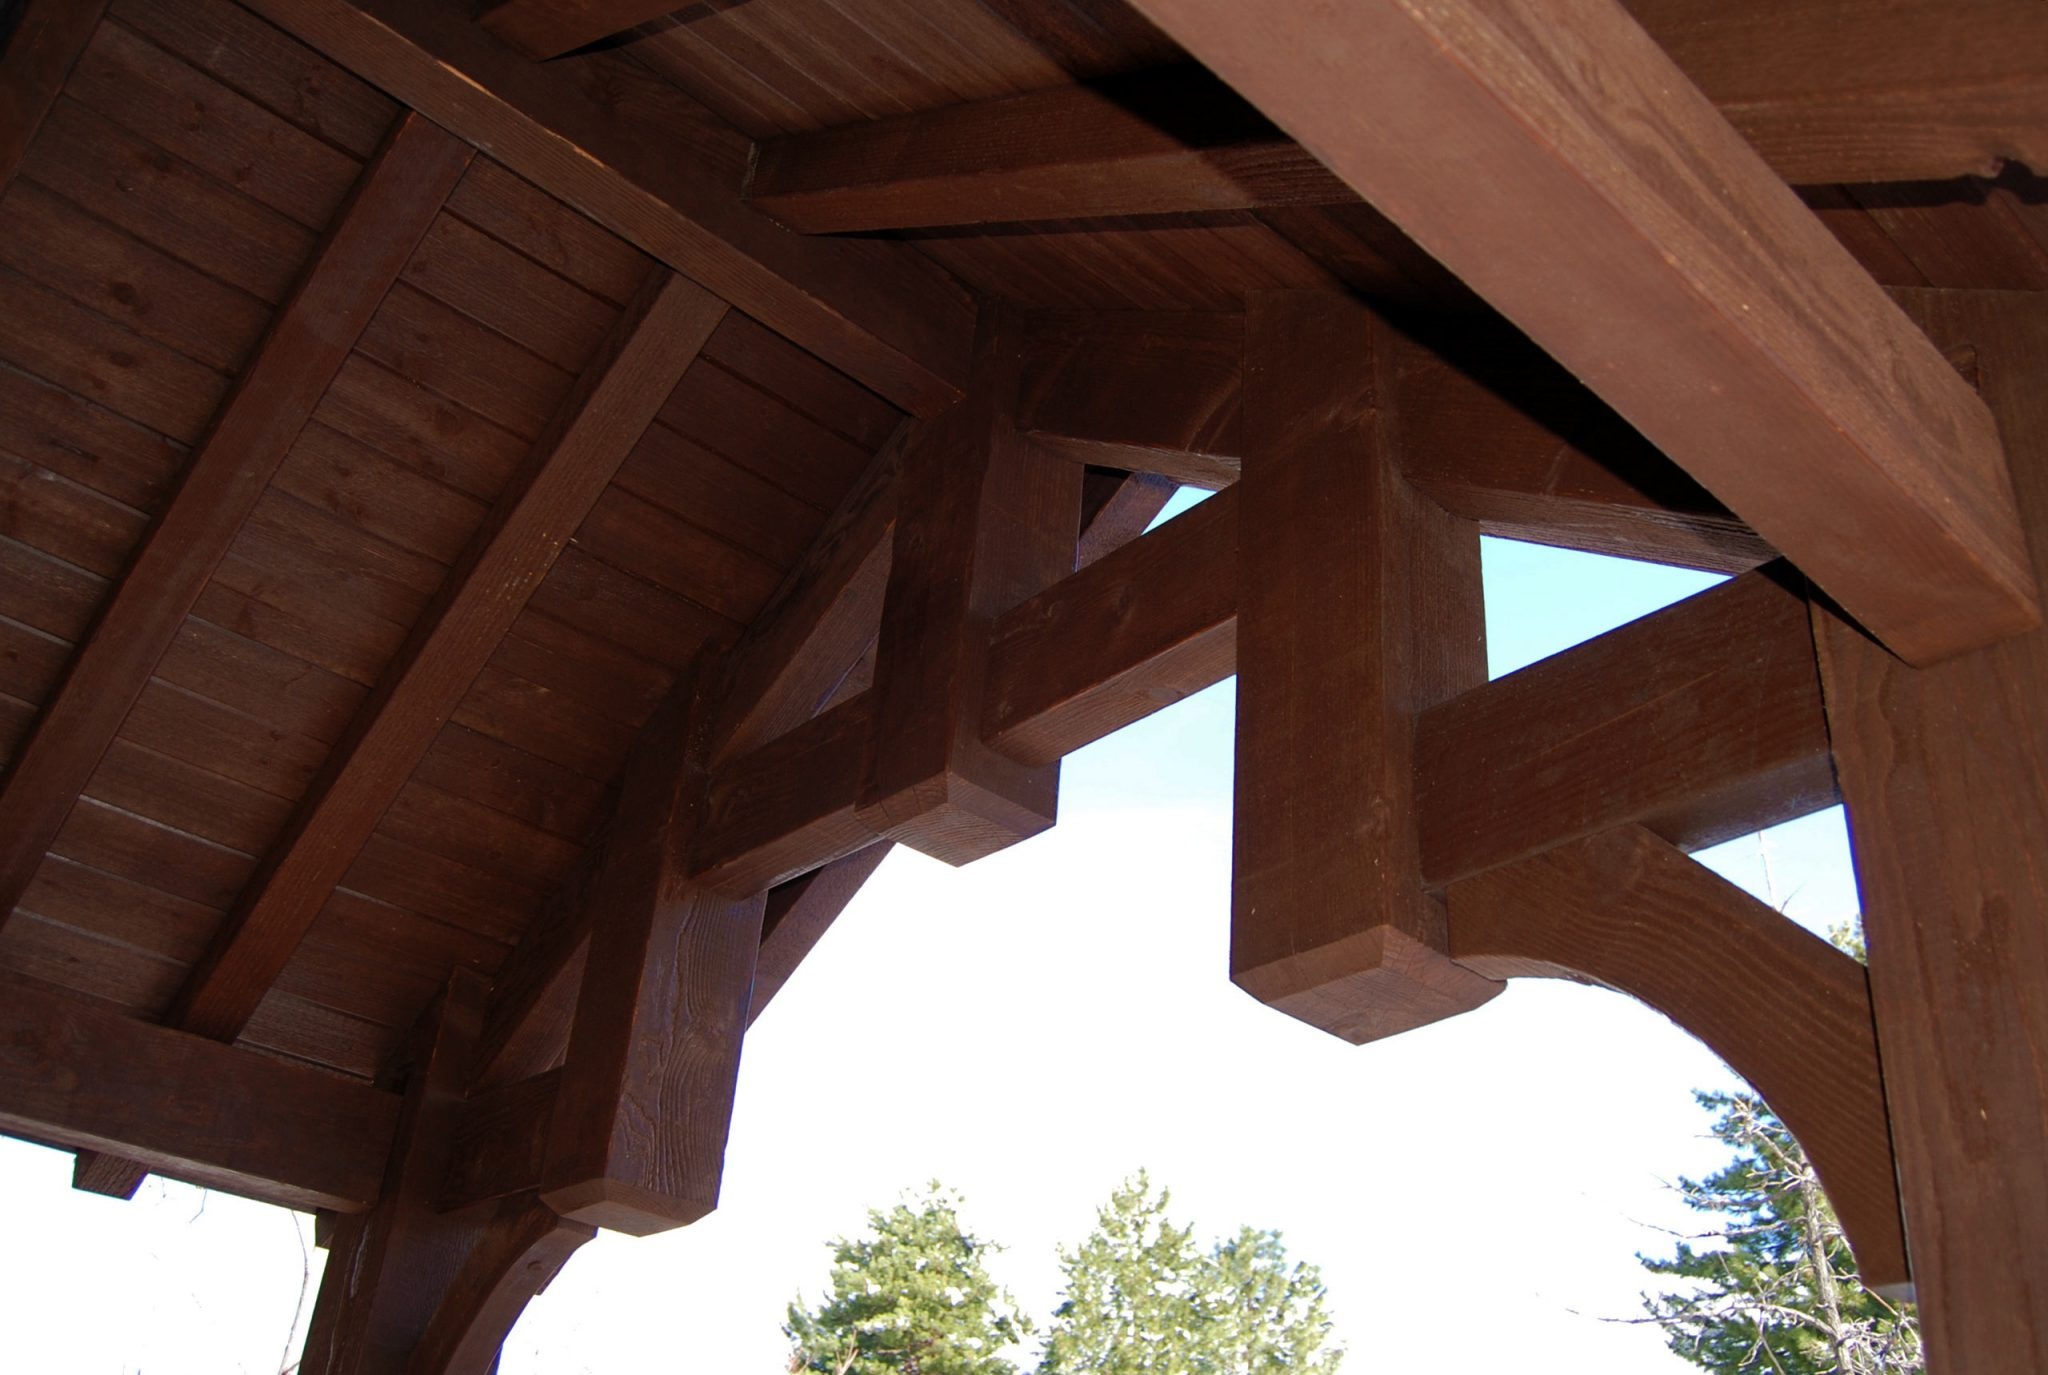 Jacks-Entry-pavilion-roof